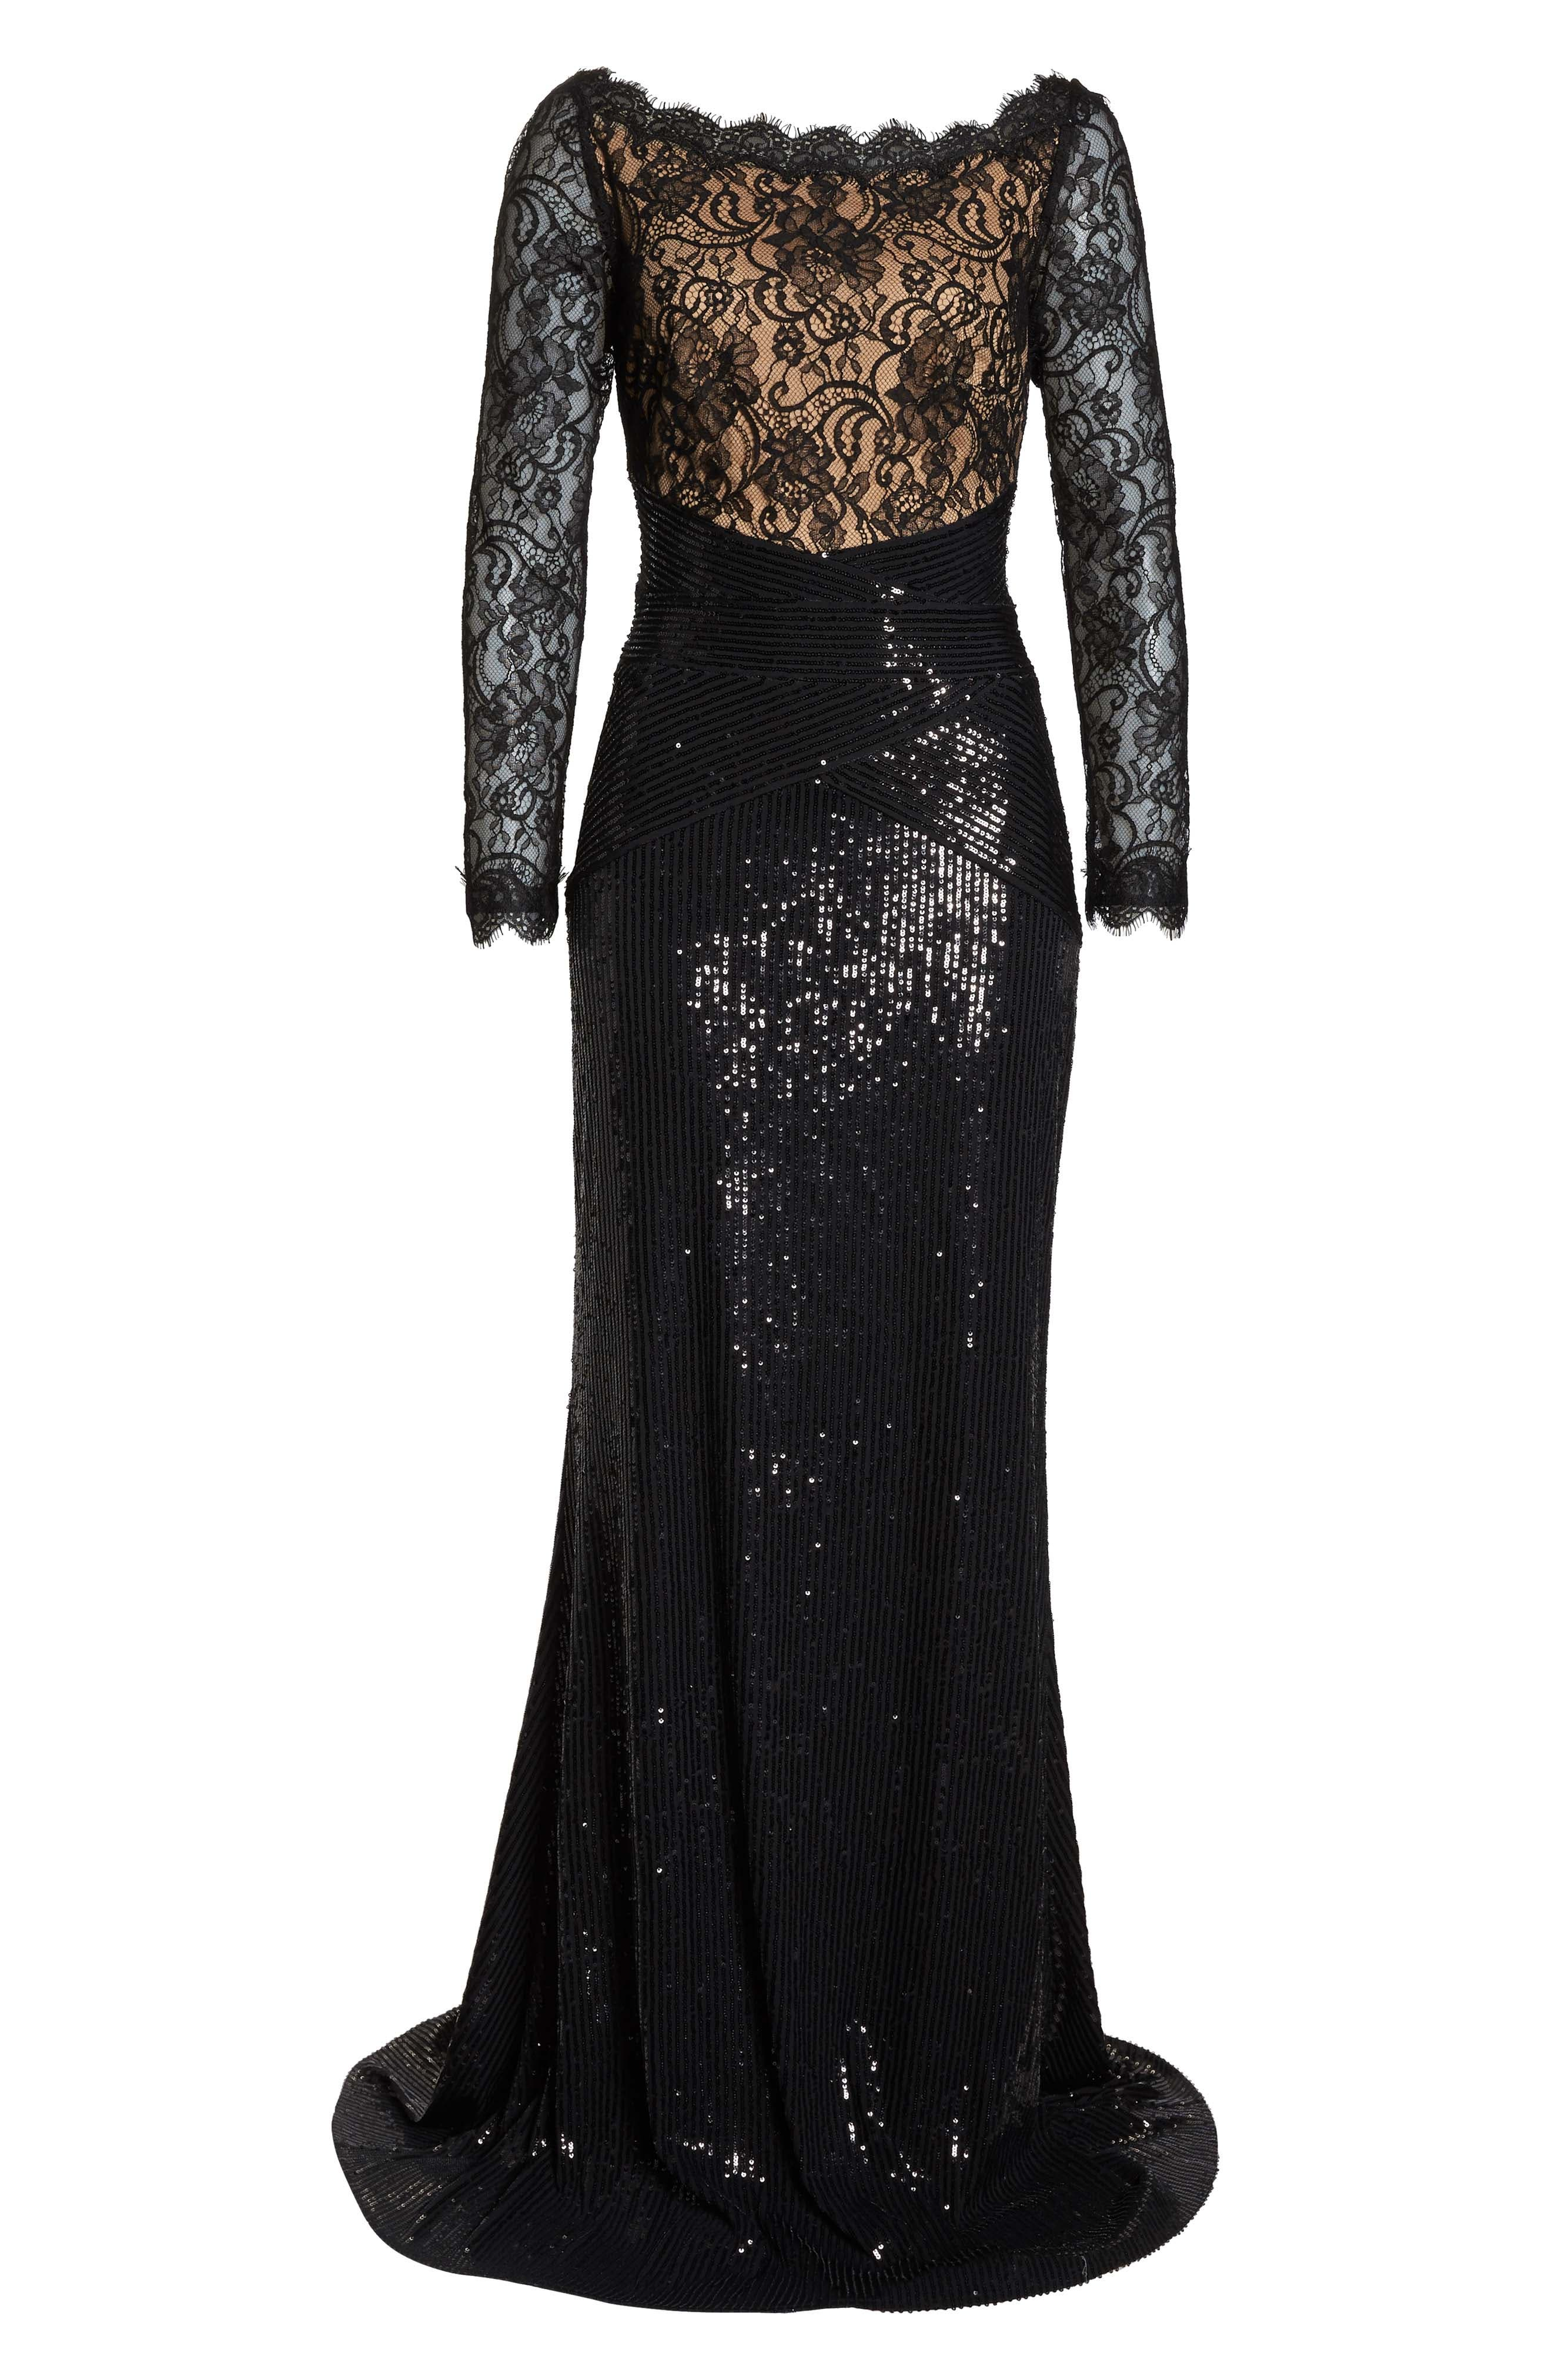 Lace & Sequin Gown,                             Alternate thumbnail 7, color,                             BLACK/ NUDE